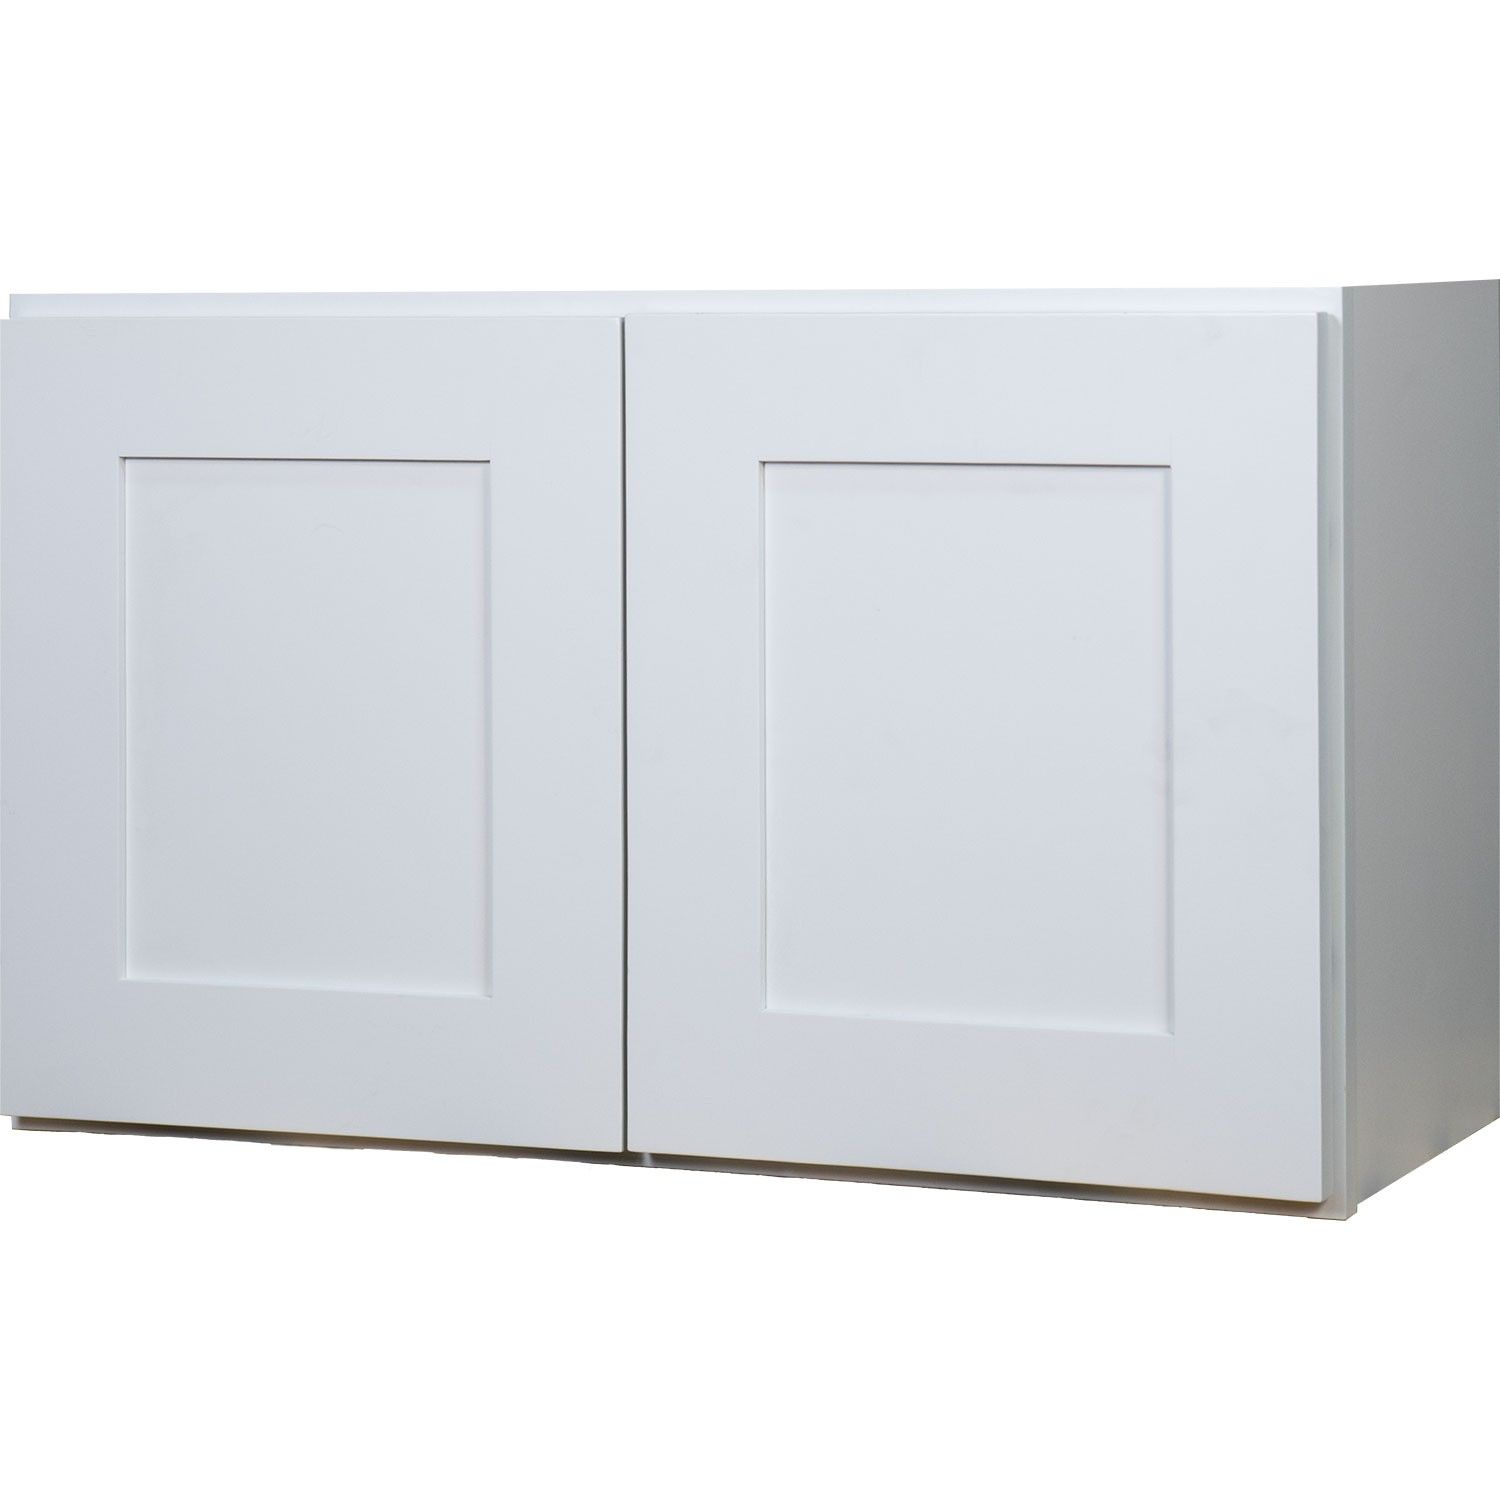 DOUBLE DOOR BRIDGE WALL CABINET IN SHAKER WHITE WITH 2 SOFT CLOSE ...